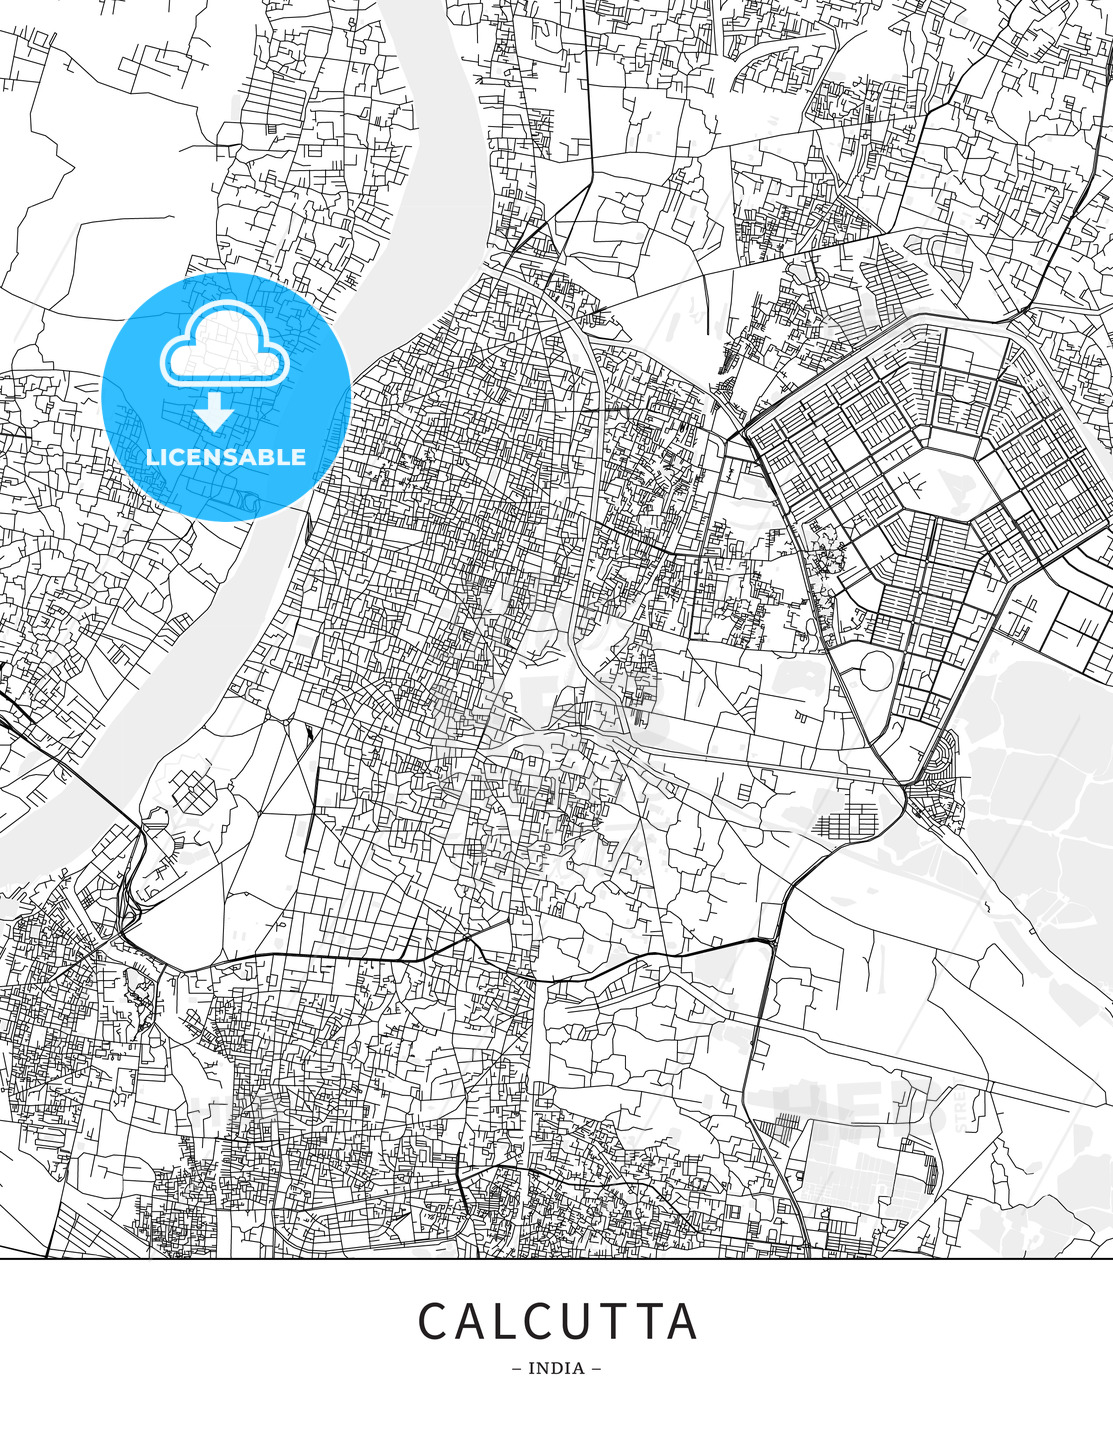 Calcutta, India, Map poster borderless print template | HEBSTREITS on